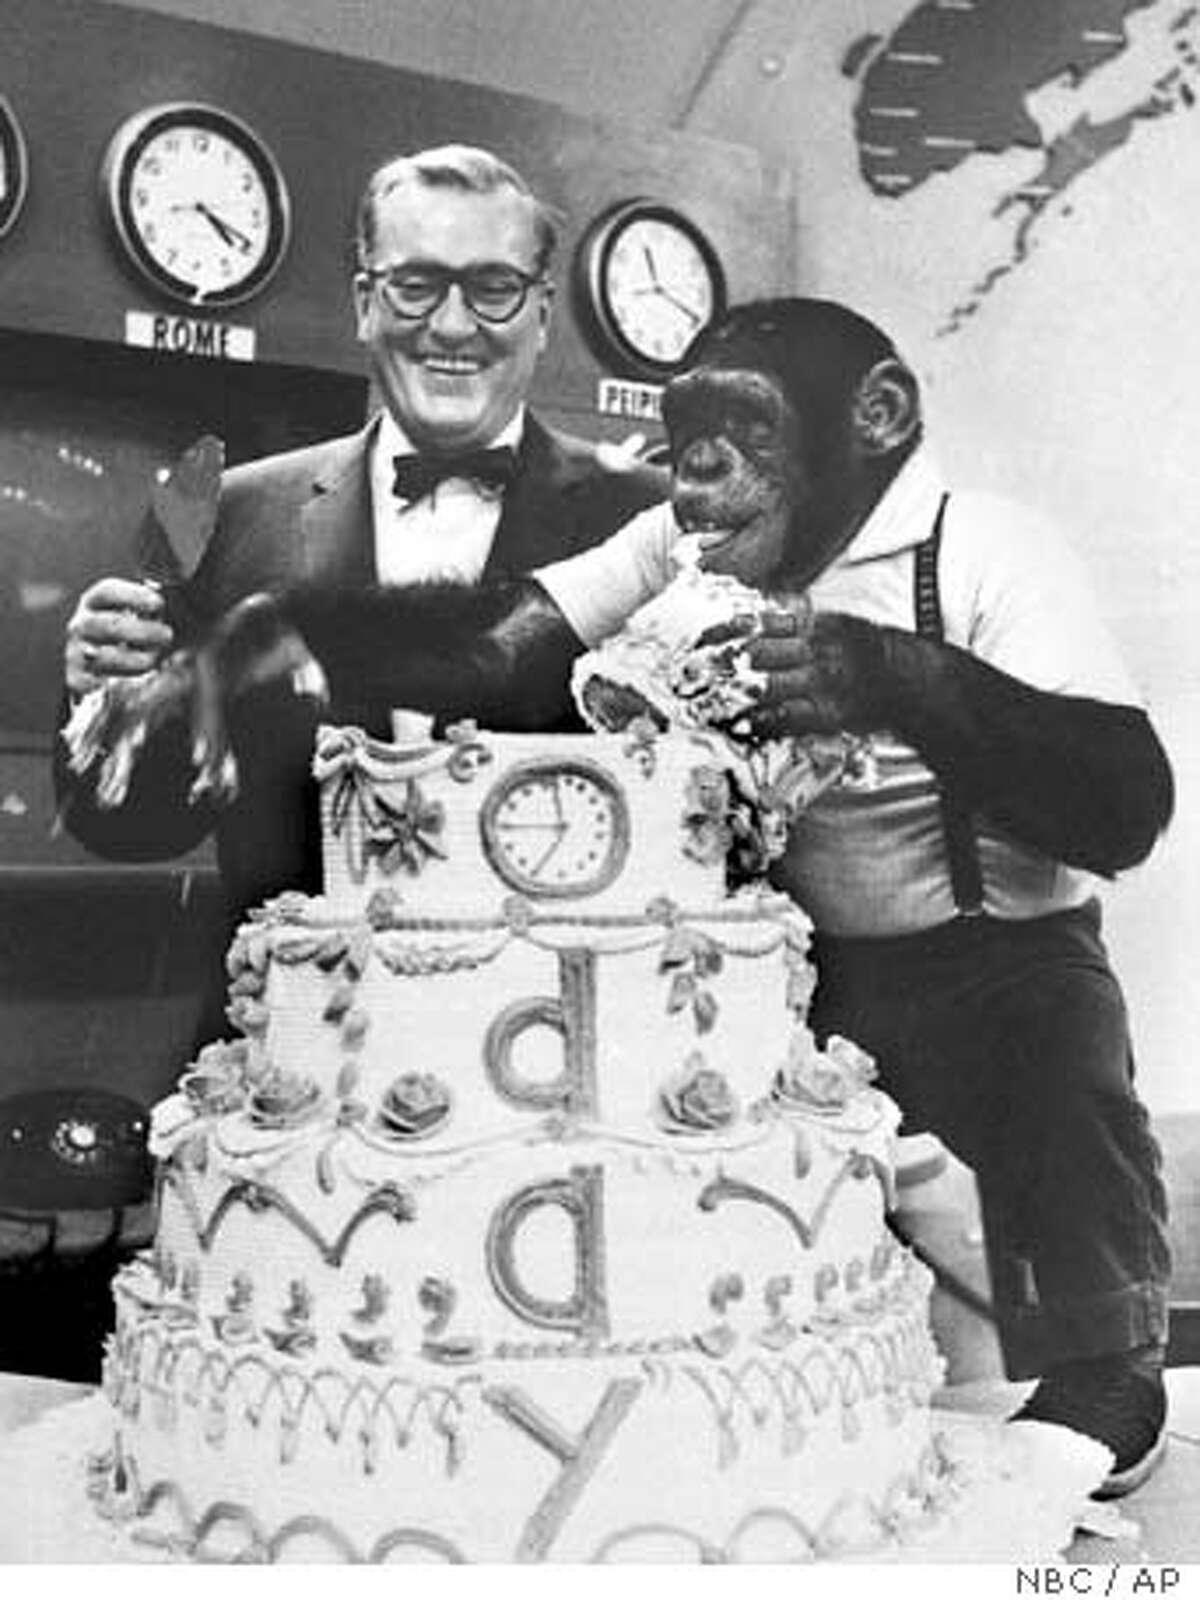 """FILE--Chimpanzee J. Fred Muggs digs into a fifth-anniversary cake for NBC's """"Today"""" show, upstaging anchor Dave Garroway in a live broadcast from New York, in this Jan. 14, 1957, file photo. Monday, a half-century after its dawning on Jan. 14, 1952, """"Today"""" takes a sentimental journey in earnest, looking back on a few of its 13,000 yesterdays during a golden anniversary broadcast from 7 to 10 a.m. EST on NBC. (AP Photo/NBC/FILE) Ran on: 12-26-2006 J. Fred Muggs was Dave Garroways chimpanzee sidekick on the Today show in the early 1950s."""